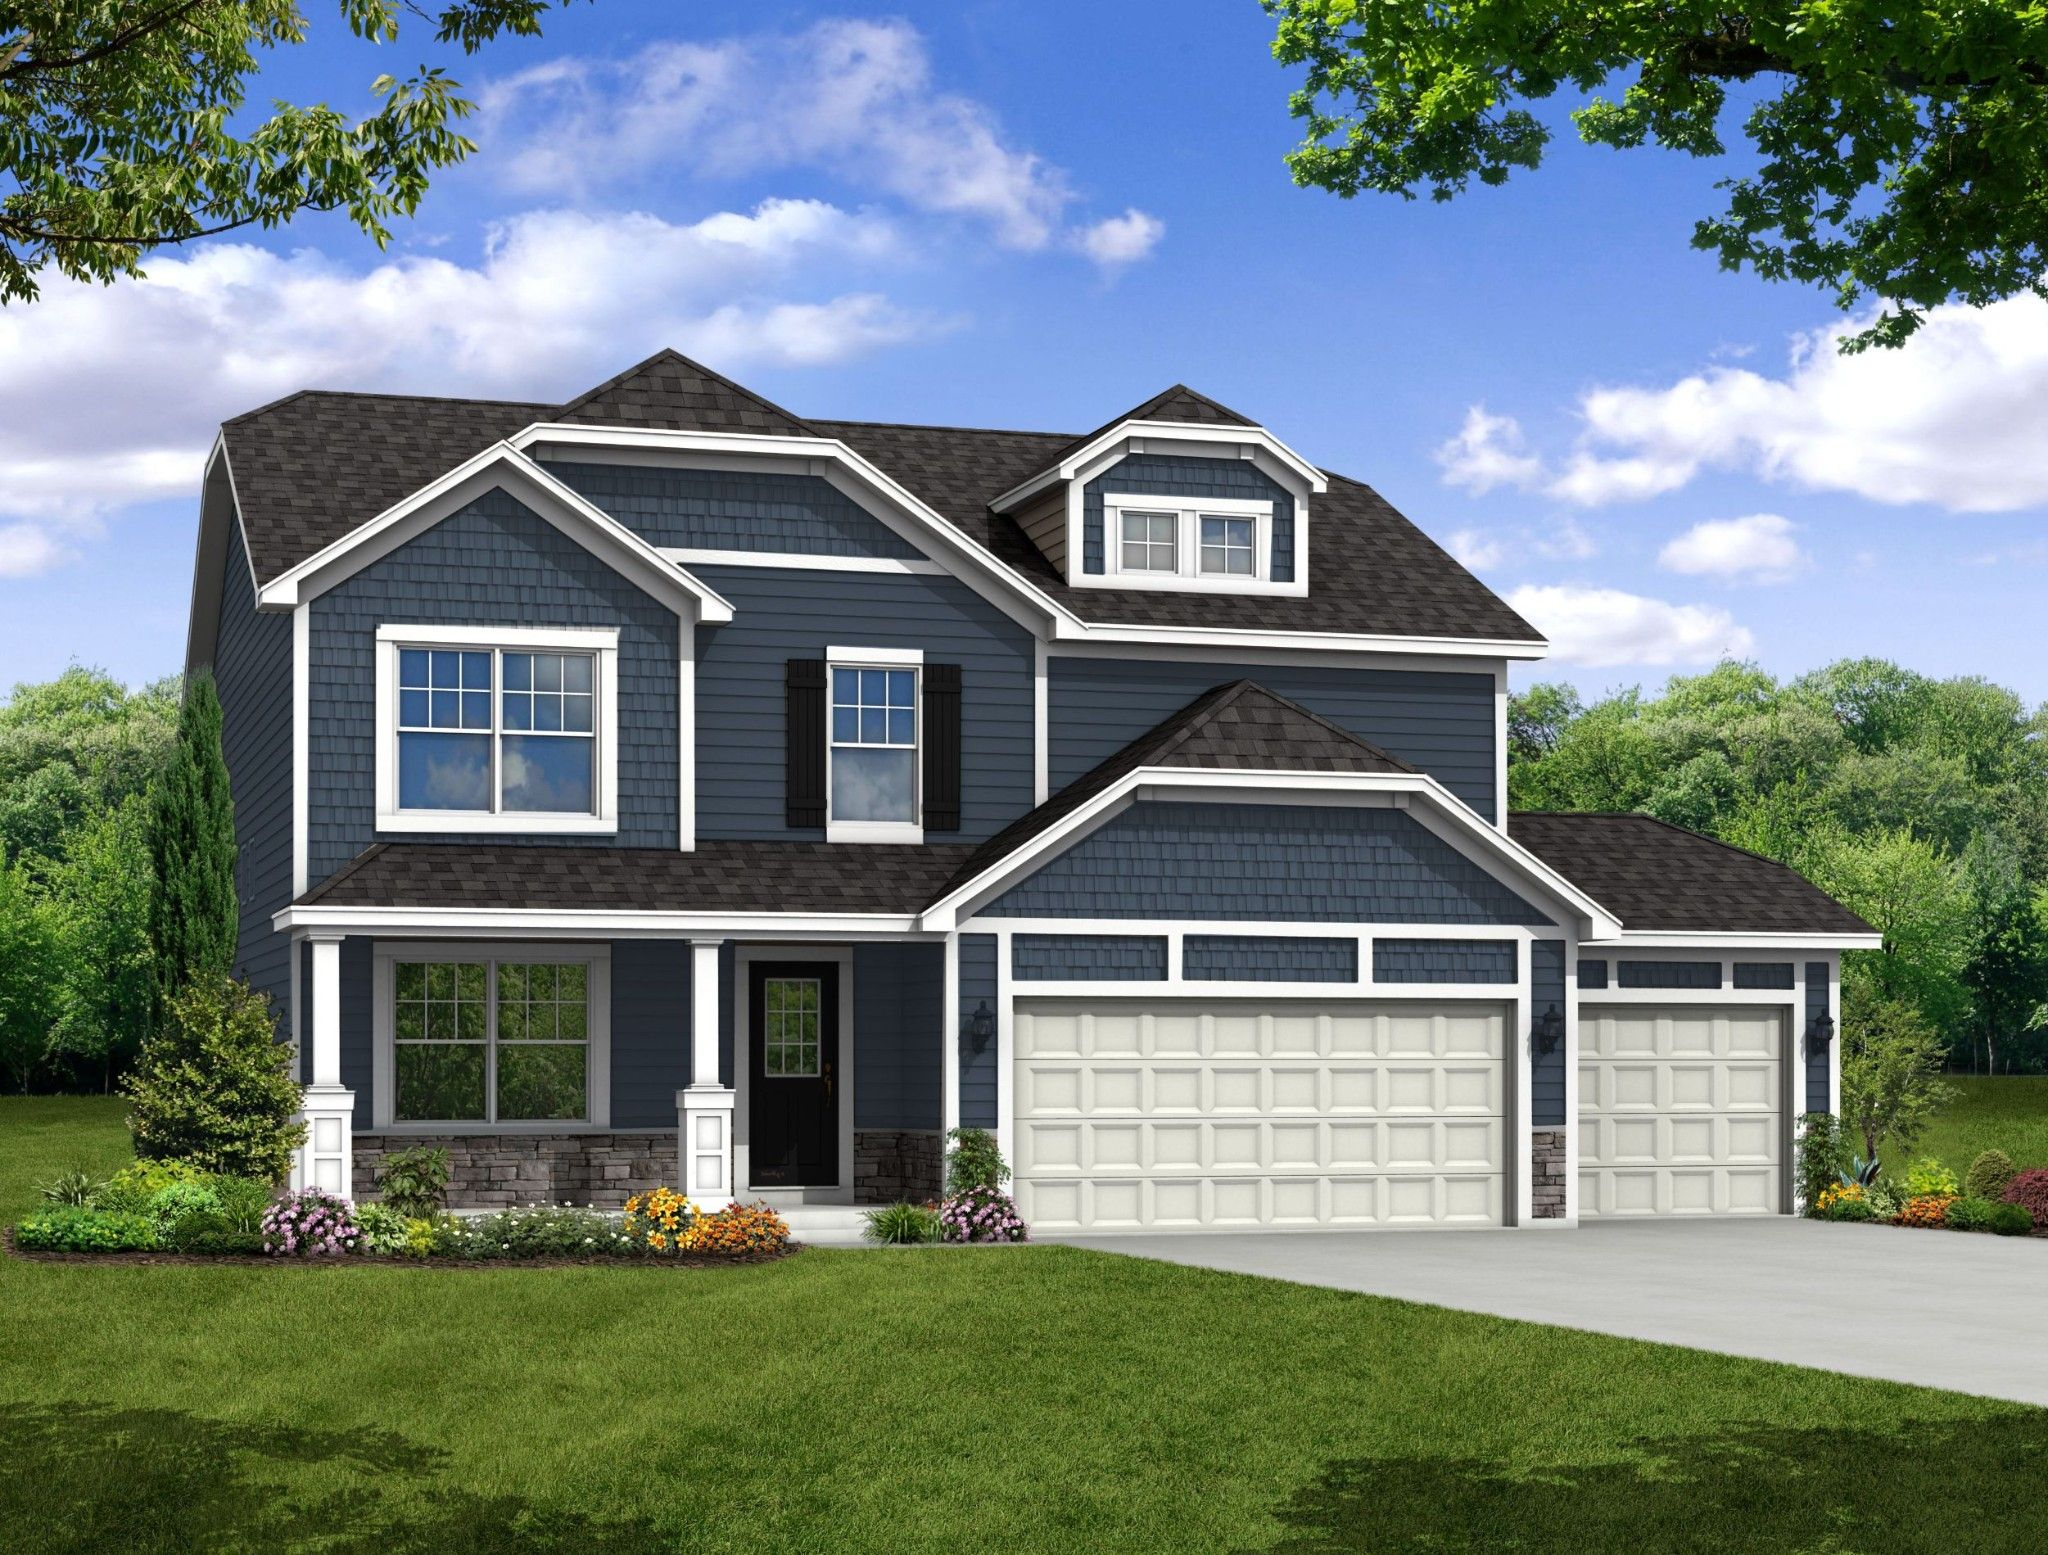 Exterior featured in the Baymont By Olthof Homes in Gary, IN